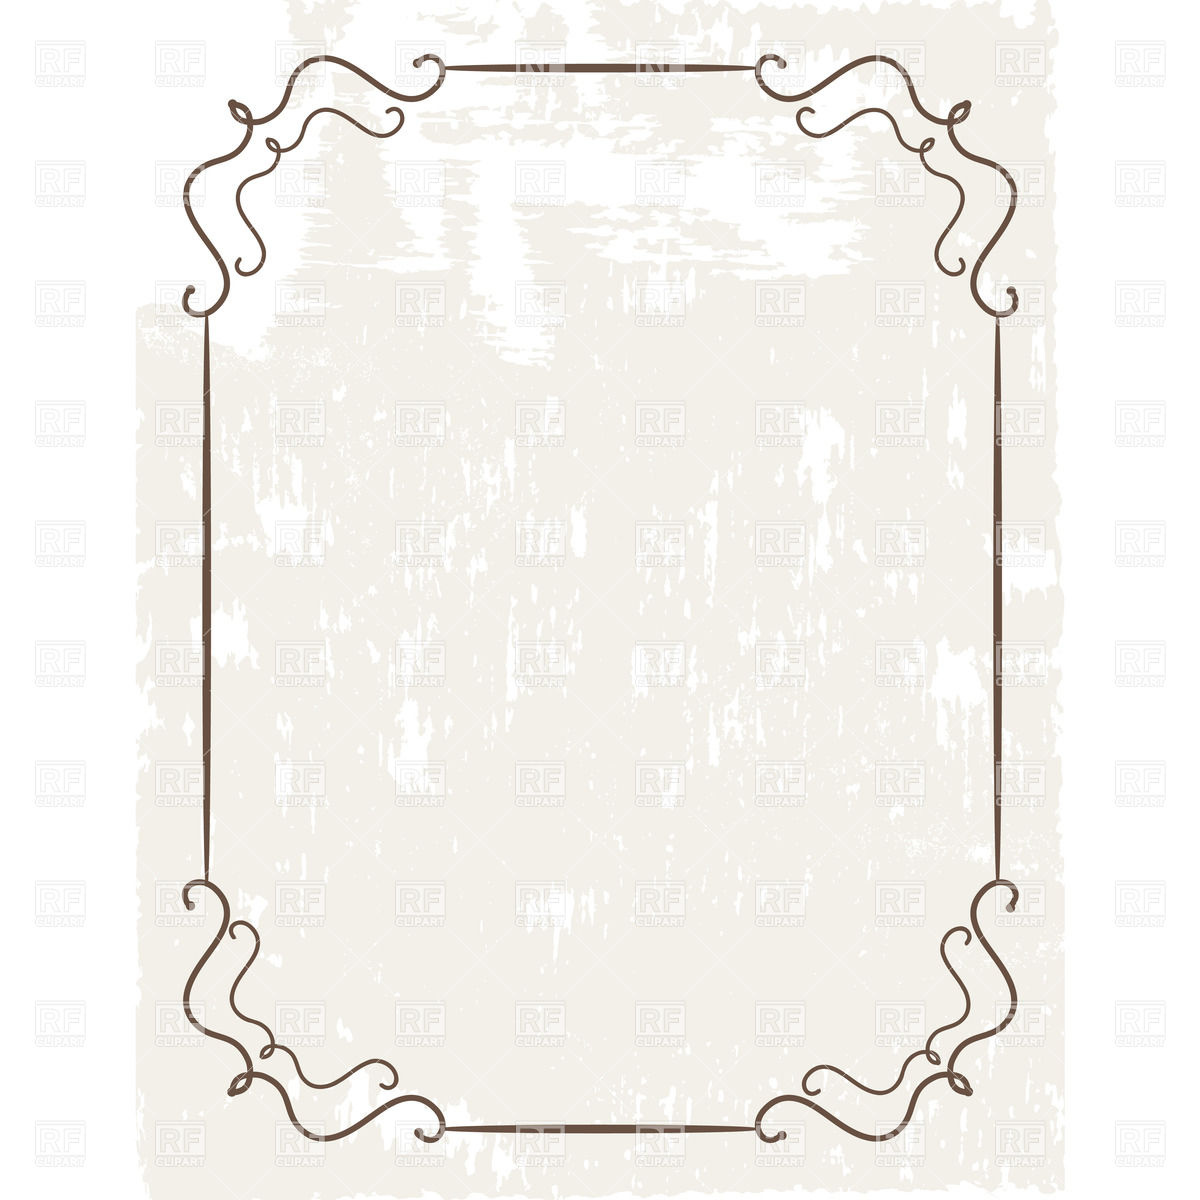 1200x1200 Simple Vintage Frame On Grungy Background Vector Image Vector